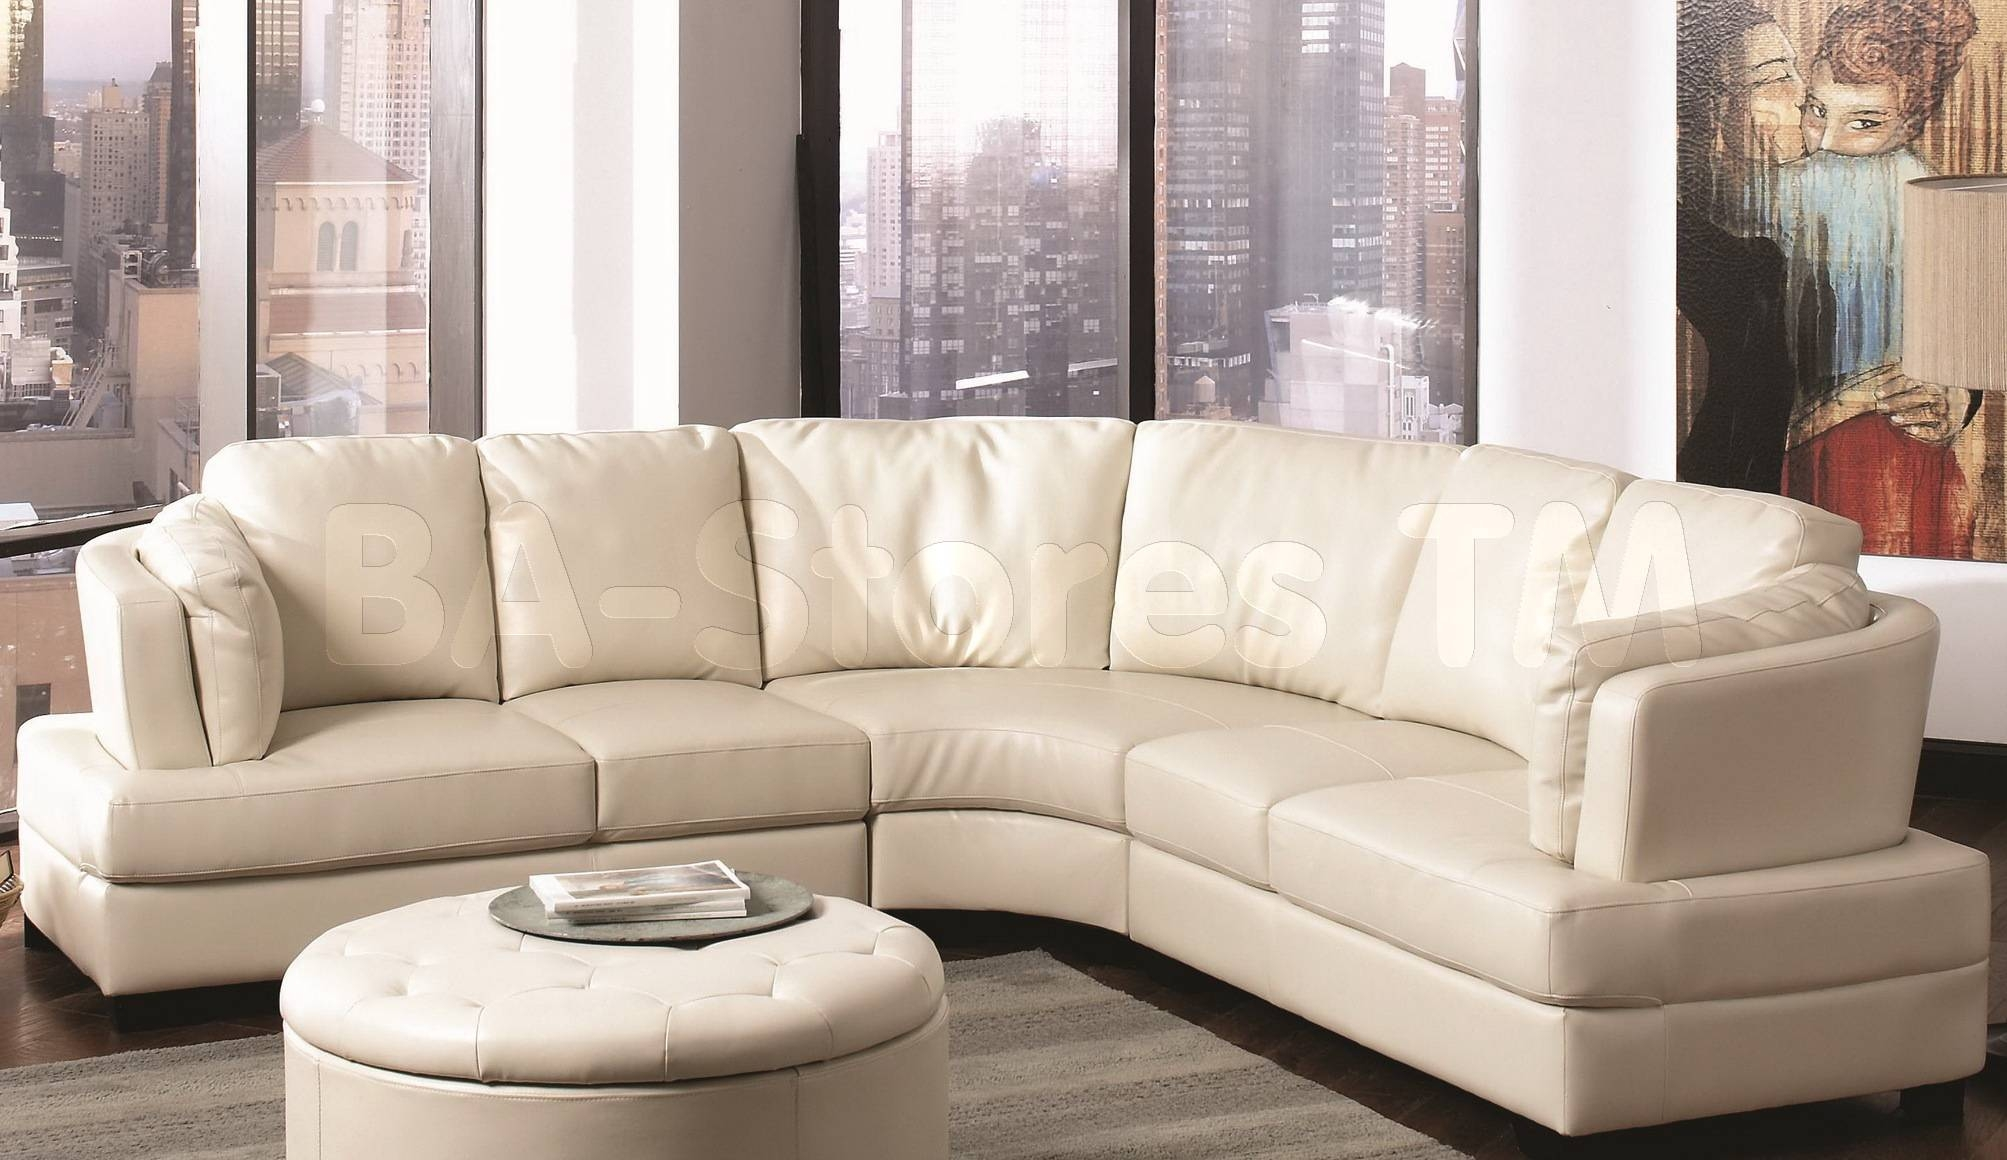 Cream Leather Sofa | Tehranmix Decoration inside Vintage Leather Sectional Sofas (Image 9 of 30)